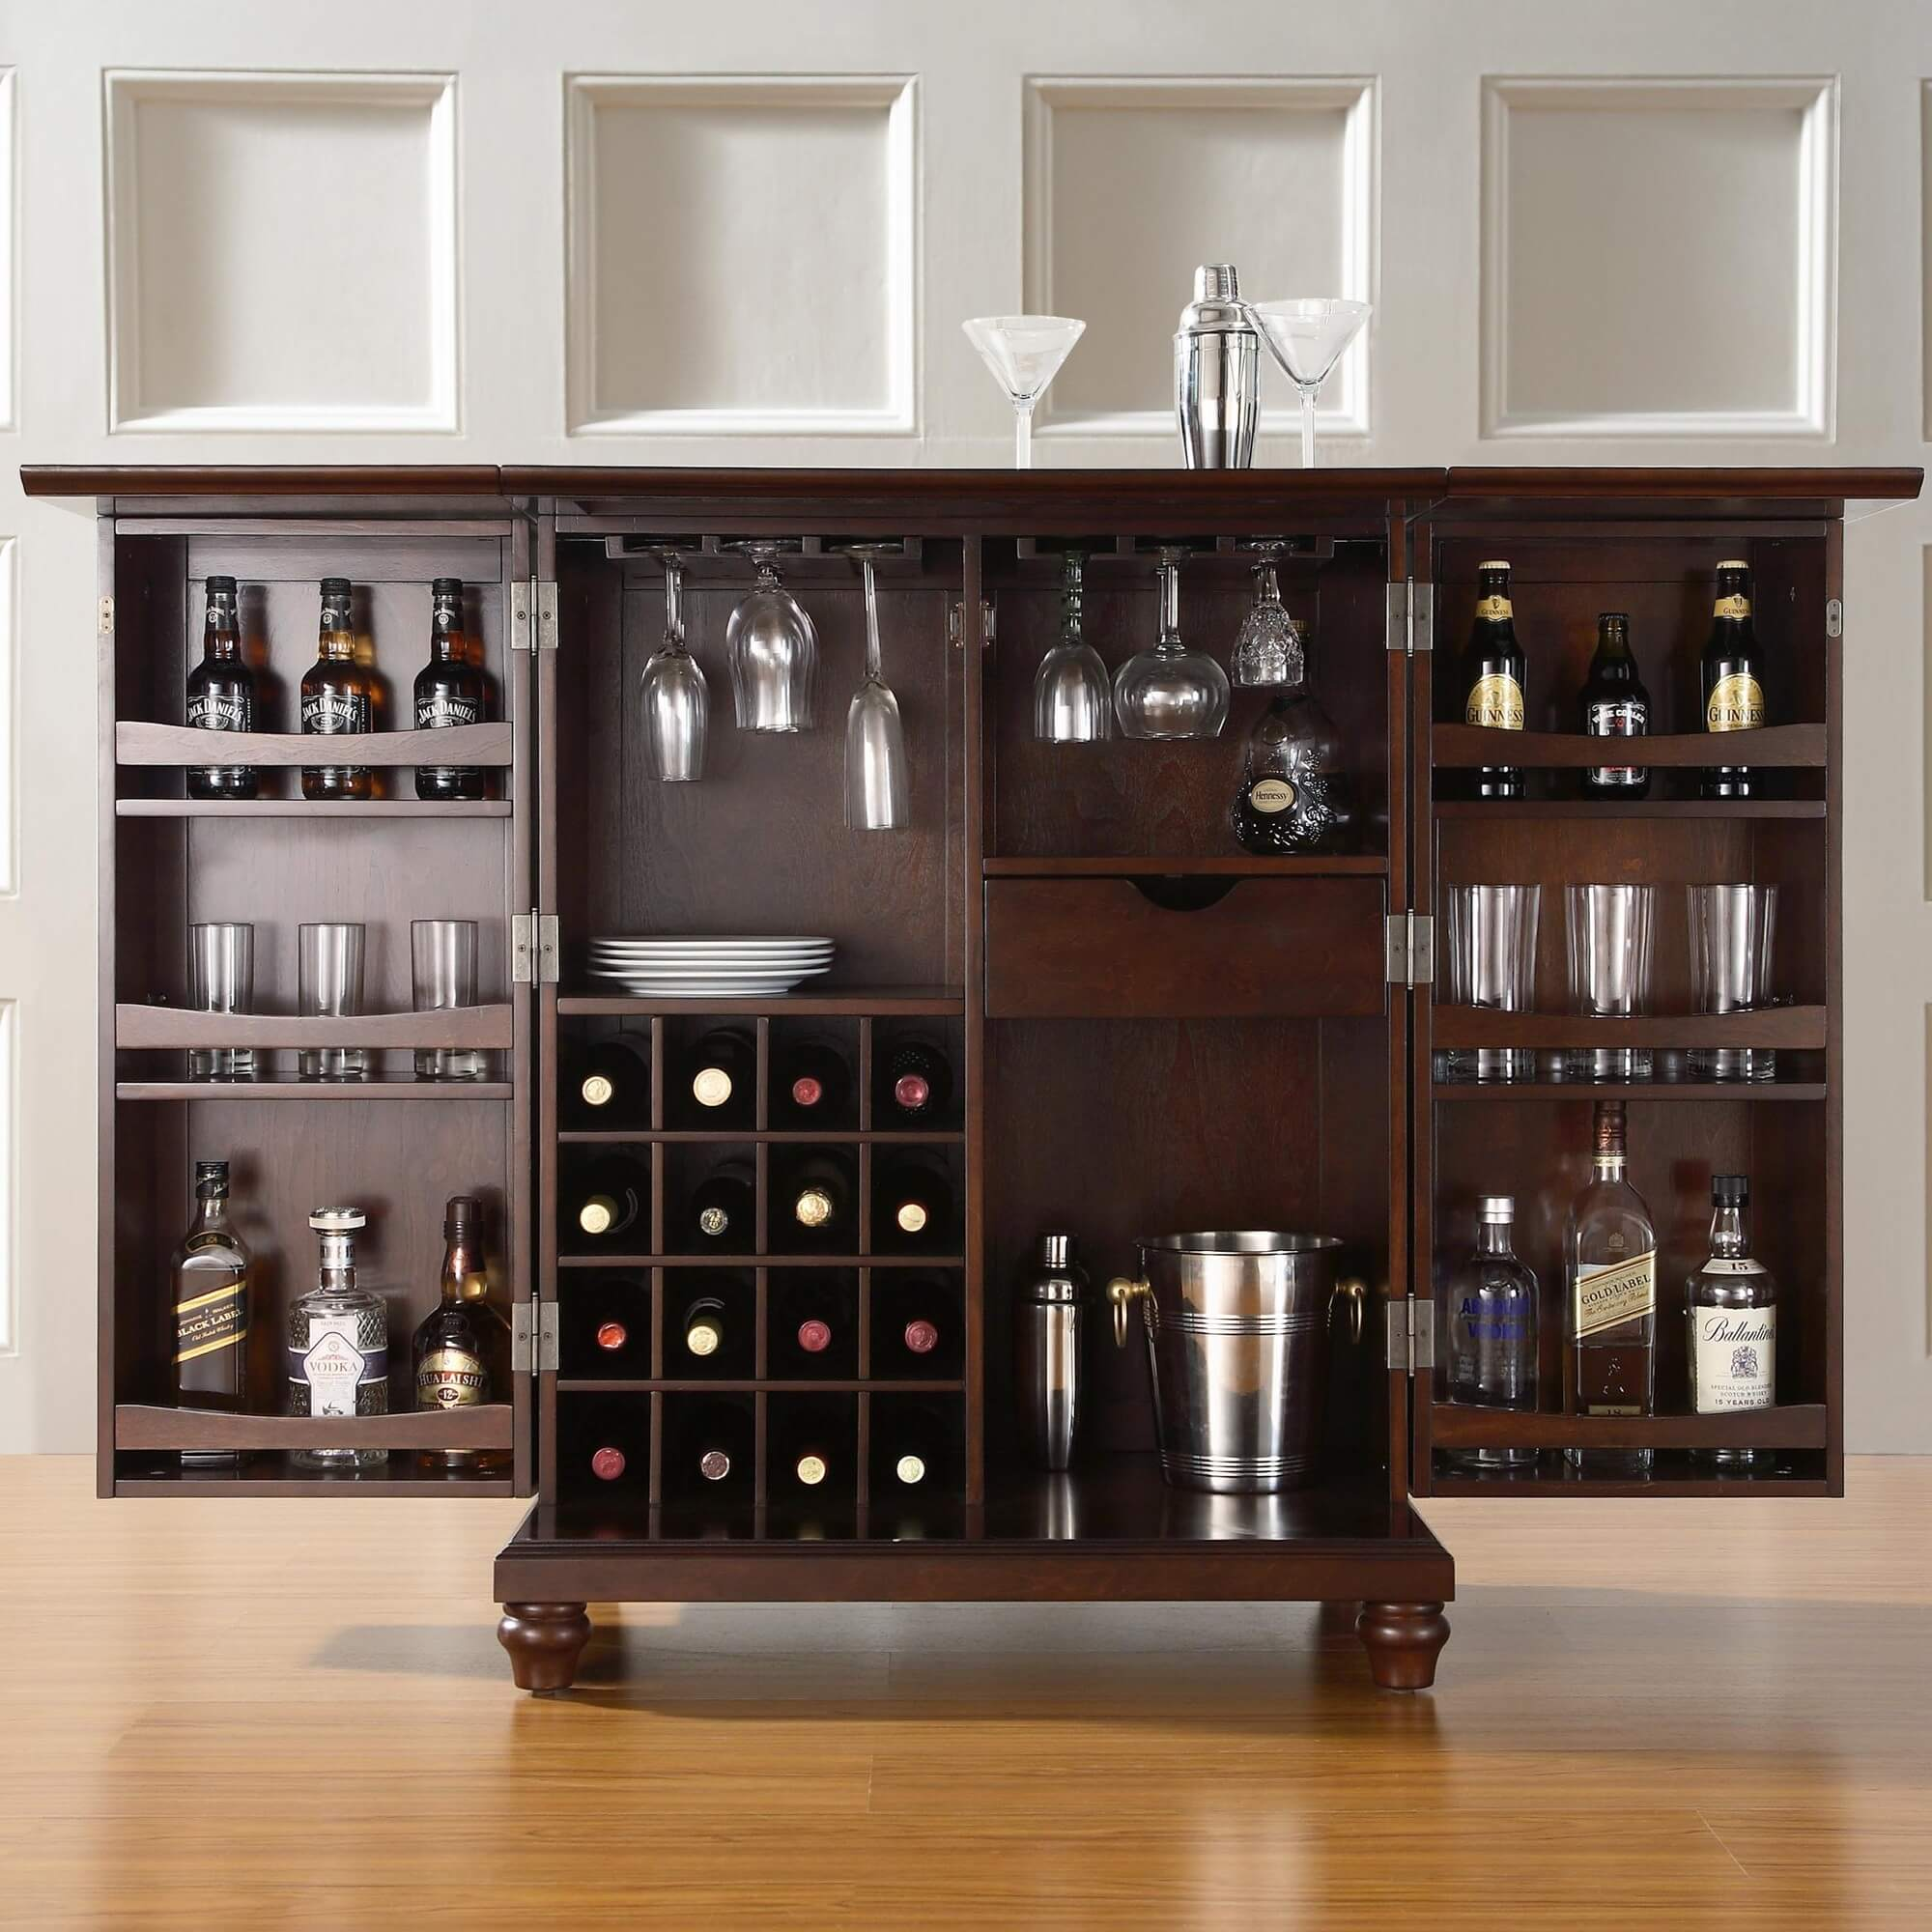 Bar For Living Room Rear storage view of elegant compact home bar cabinet set.